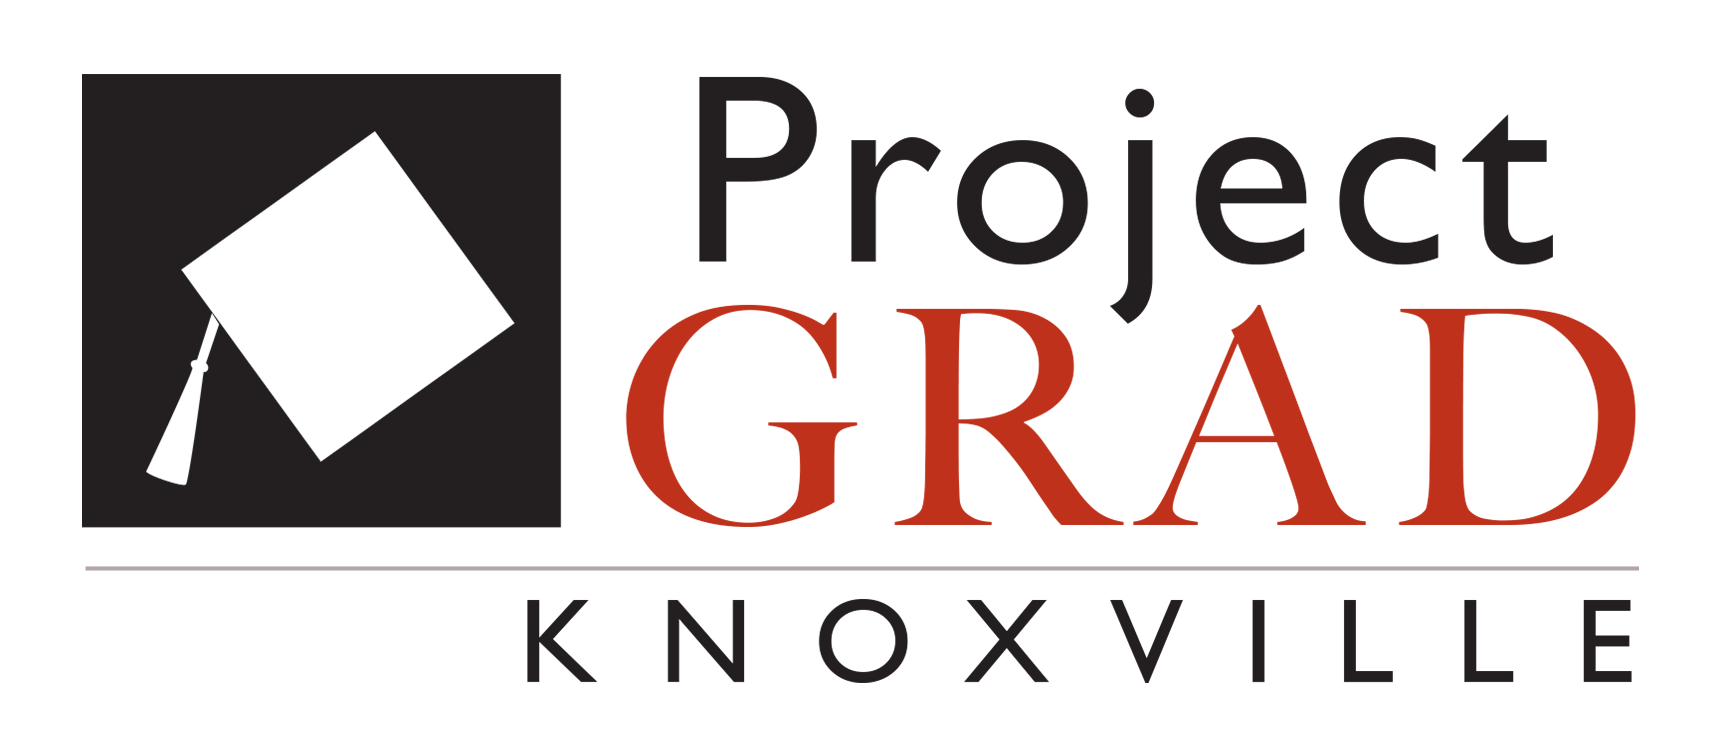 Grad Launches Internships Project Grad Knoxville